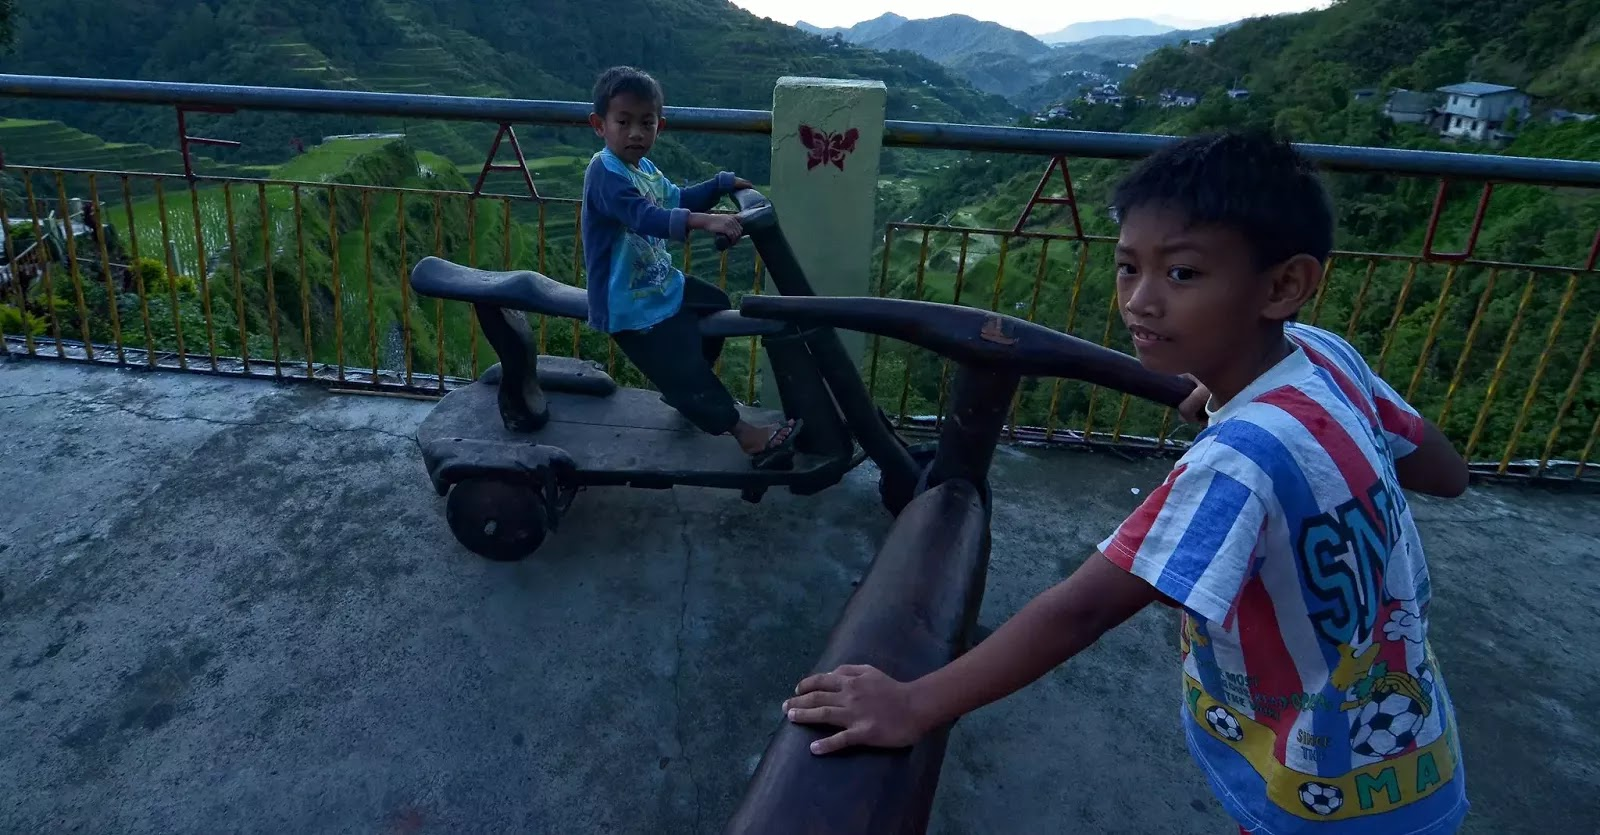 Young Kids Wooden Bike Riders of Banaue Ifugao Cordillera Administrative Region Philippines